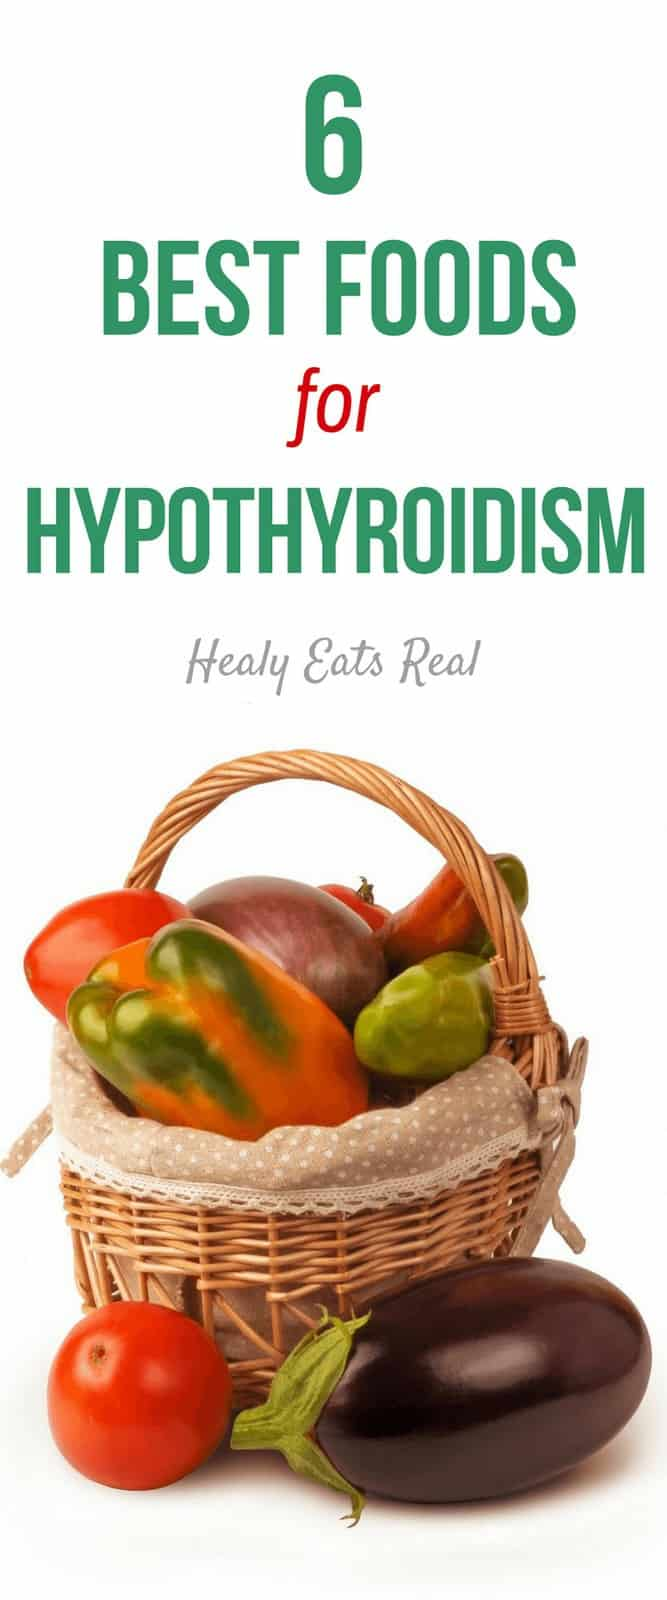 6 Best Foods for A Hypothyroidism Diet- Things can get a little confusing when figuring out which foods to eat for your hypothyroidism diet. These foods can help support an underactive thyroid.